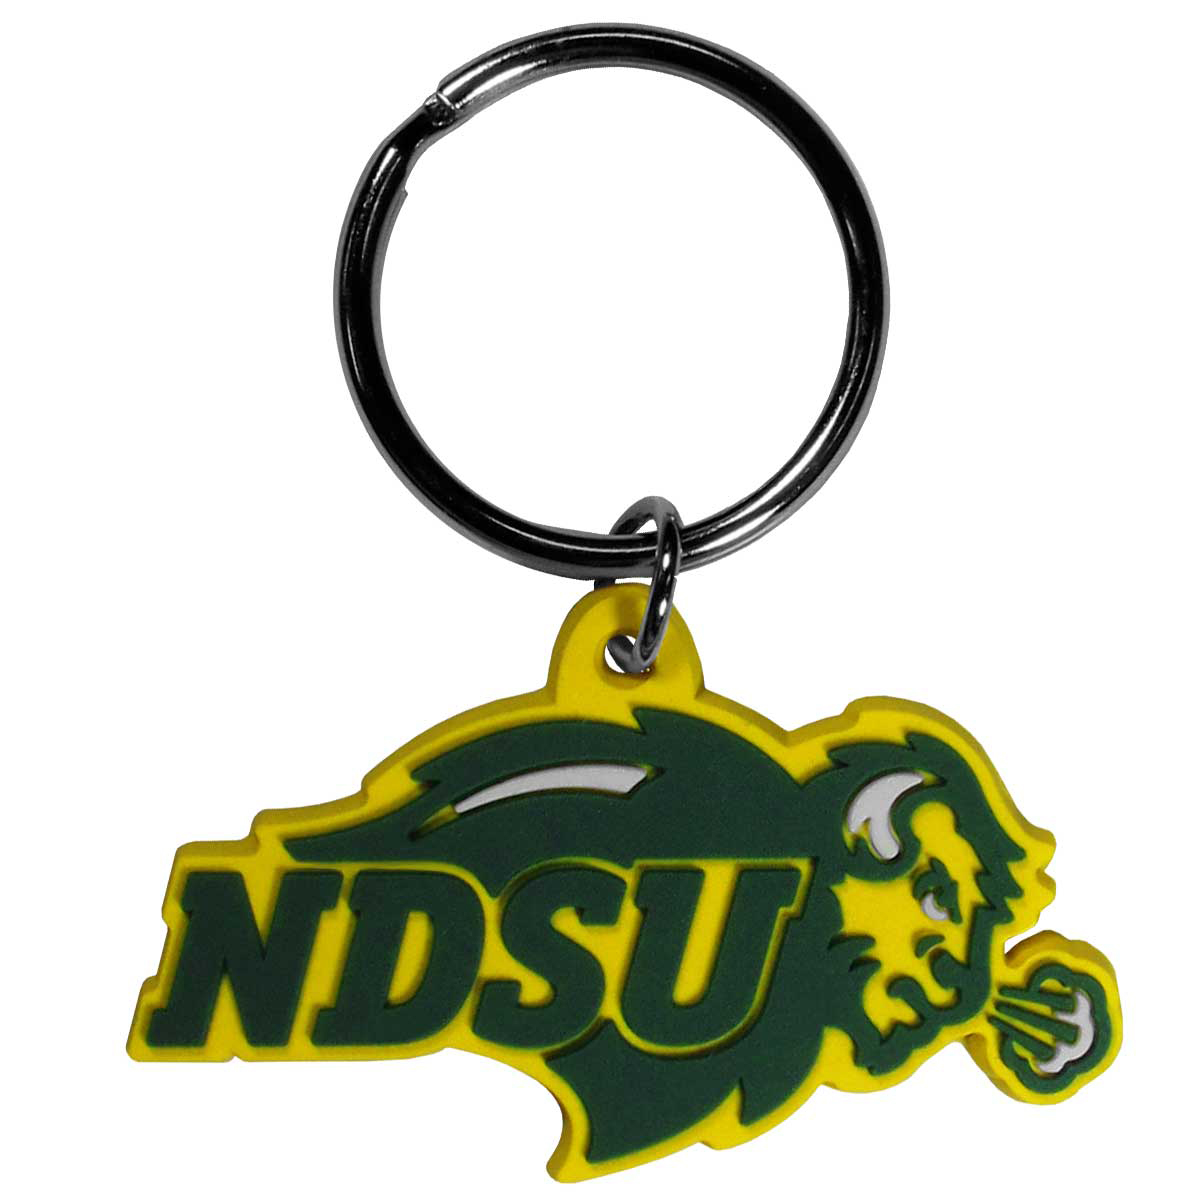 N. Dakota St. Bison Flex Key Chain - Our fun, flexible N. Dakota St. Bison key chains are made of a rubbery material that is layered to create a bright, textured logo.